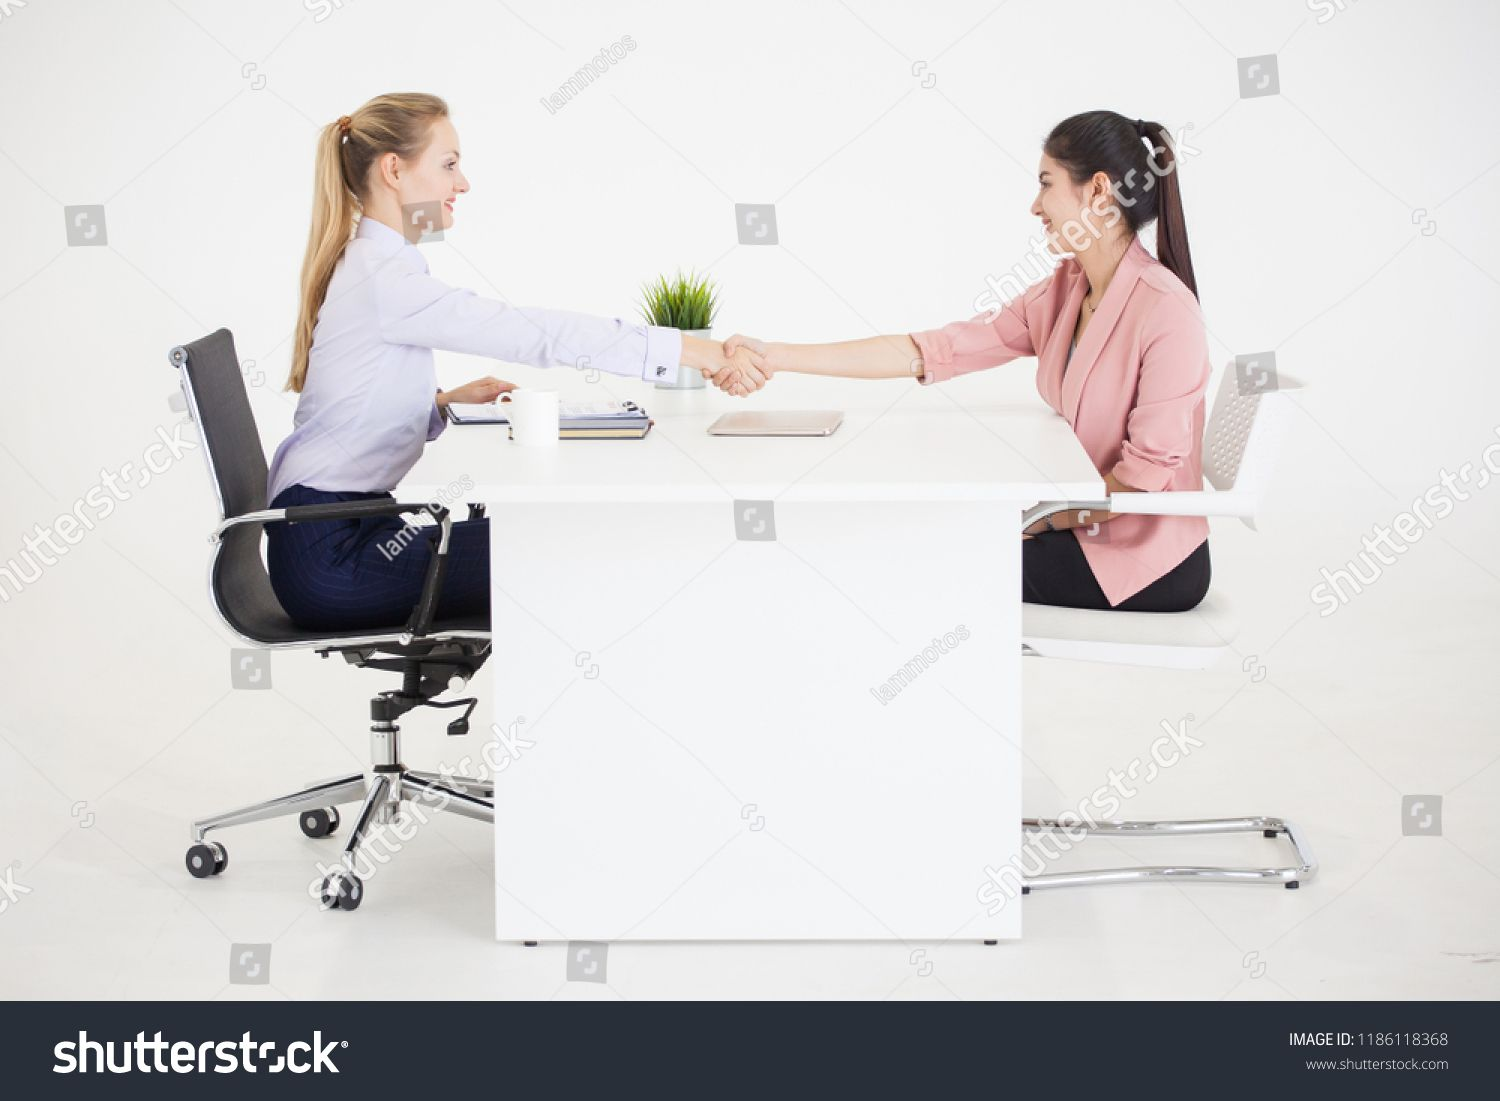 Two Businesswomen In Suits Sitting Between The Table Handshaking Of Deal On White Background Human Resources Ma Business Women Human Resources Template Design